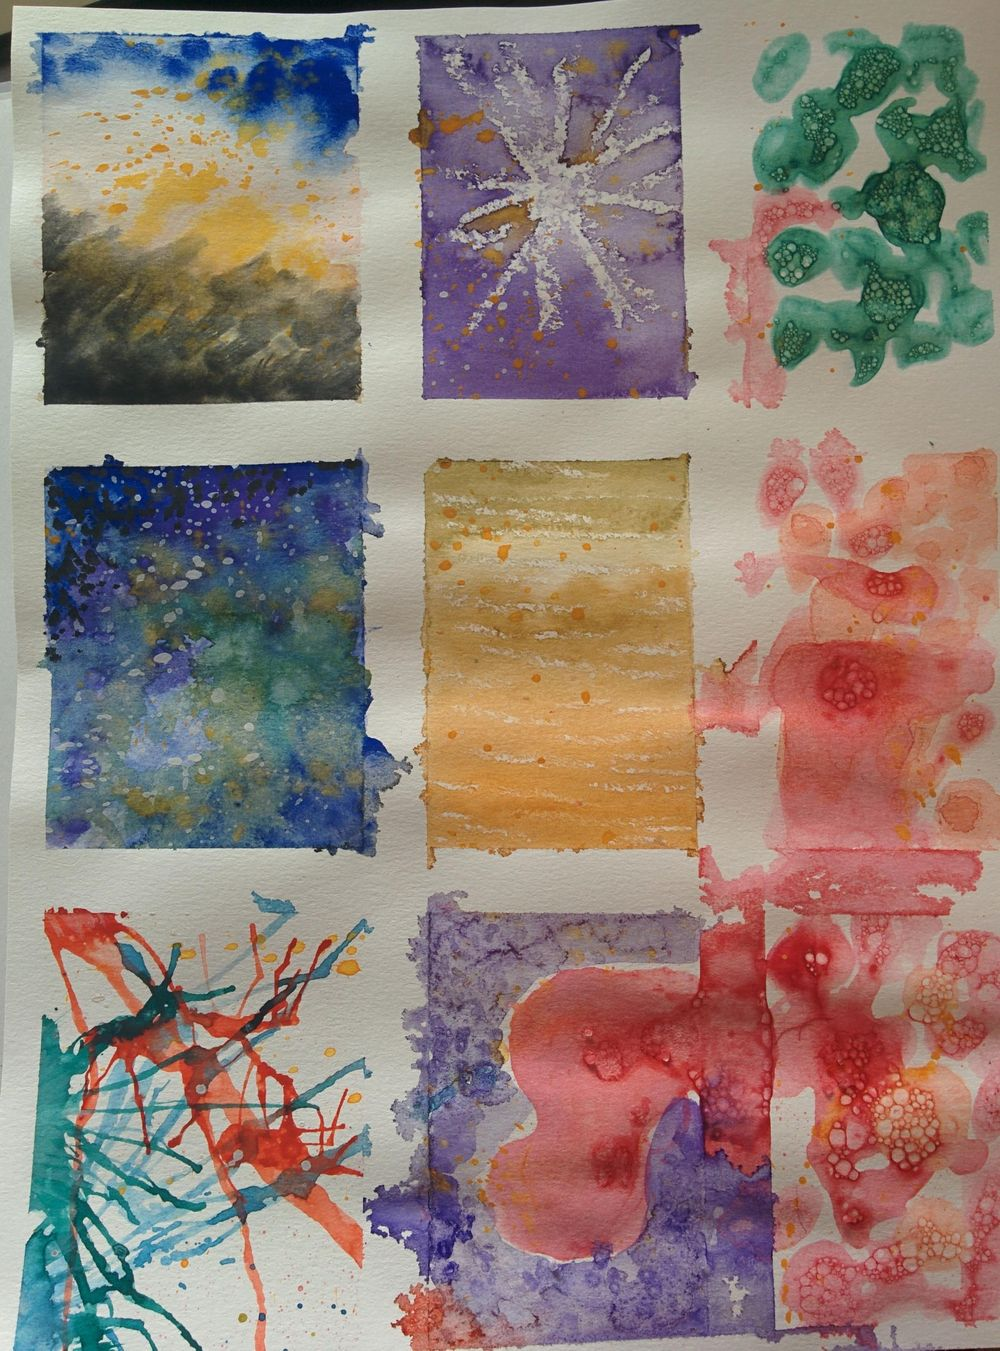 Watercolor effects as shown by Engenia Sudargo - image 2 - student project